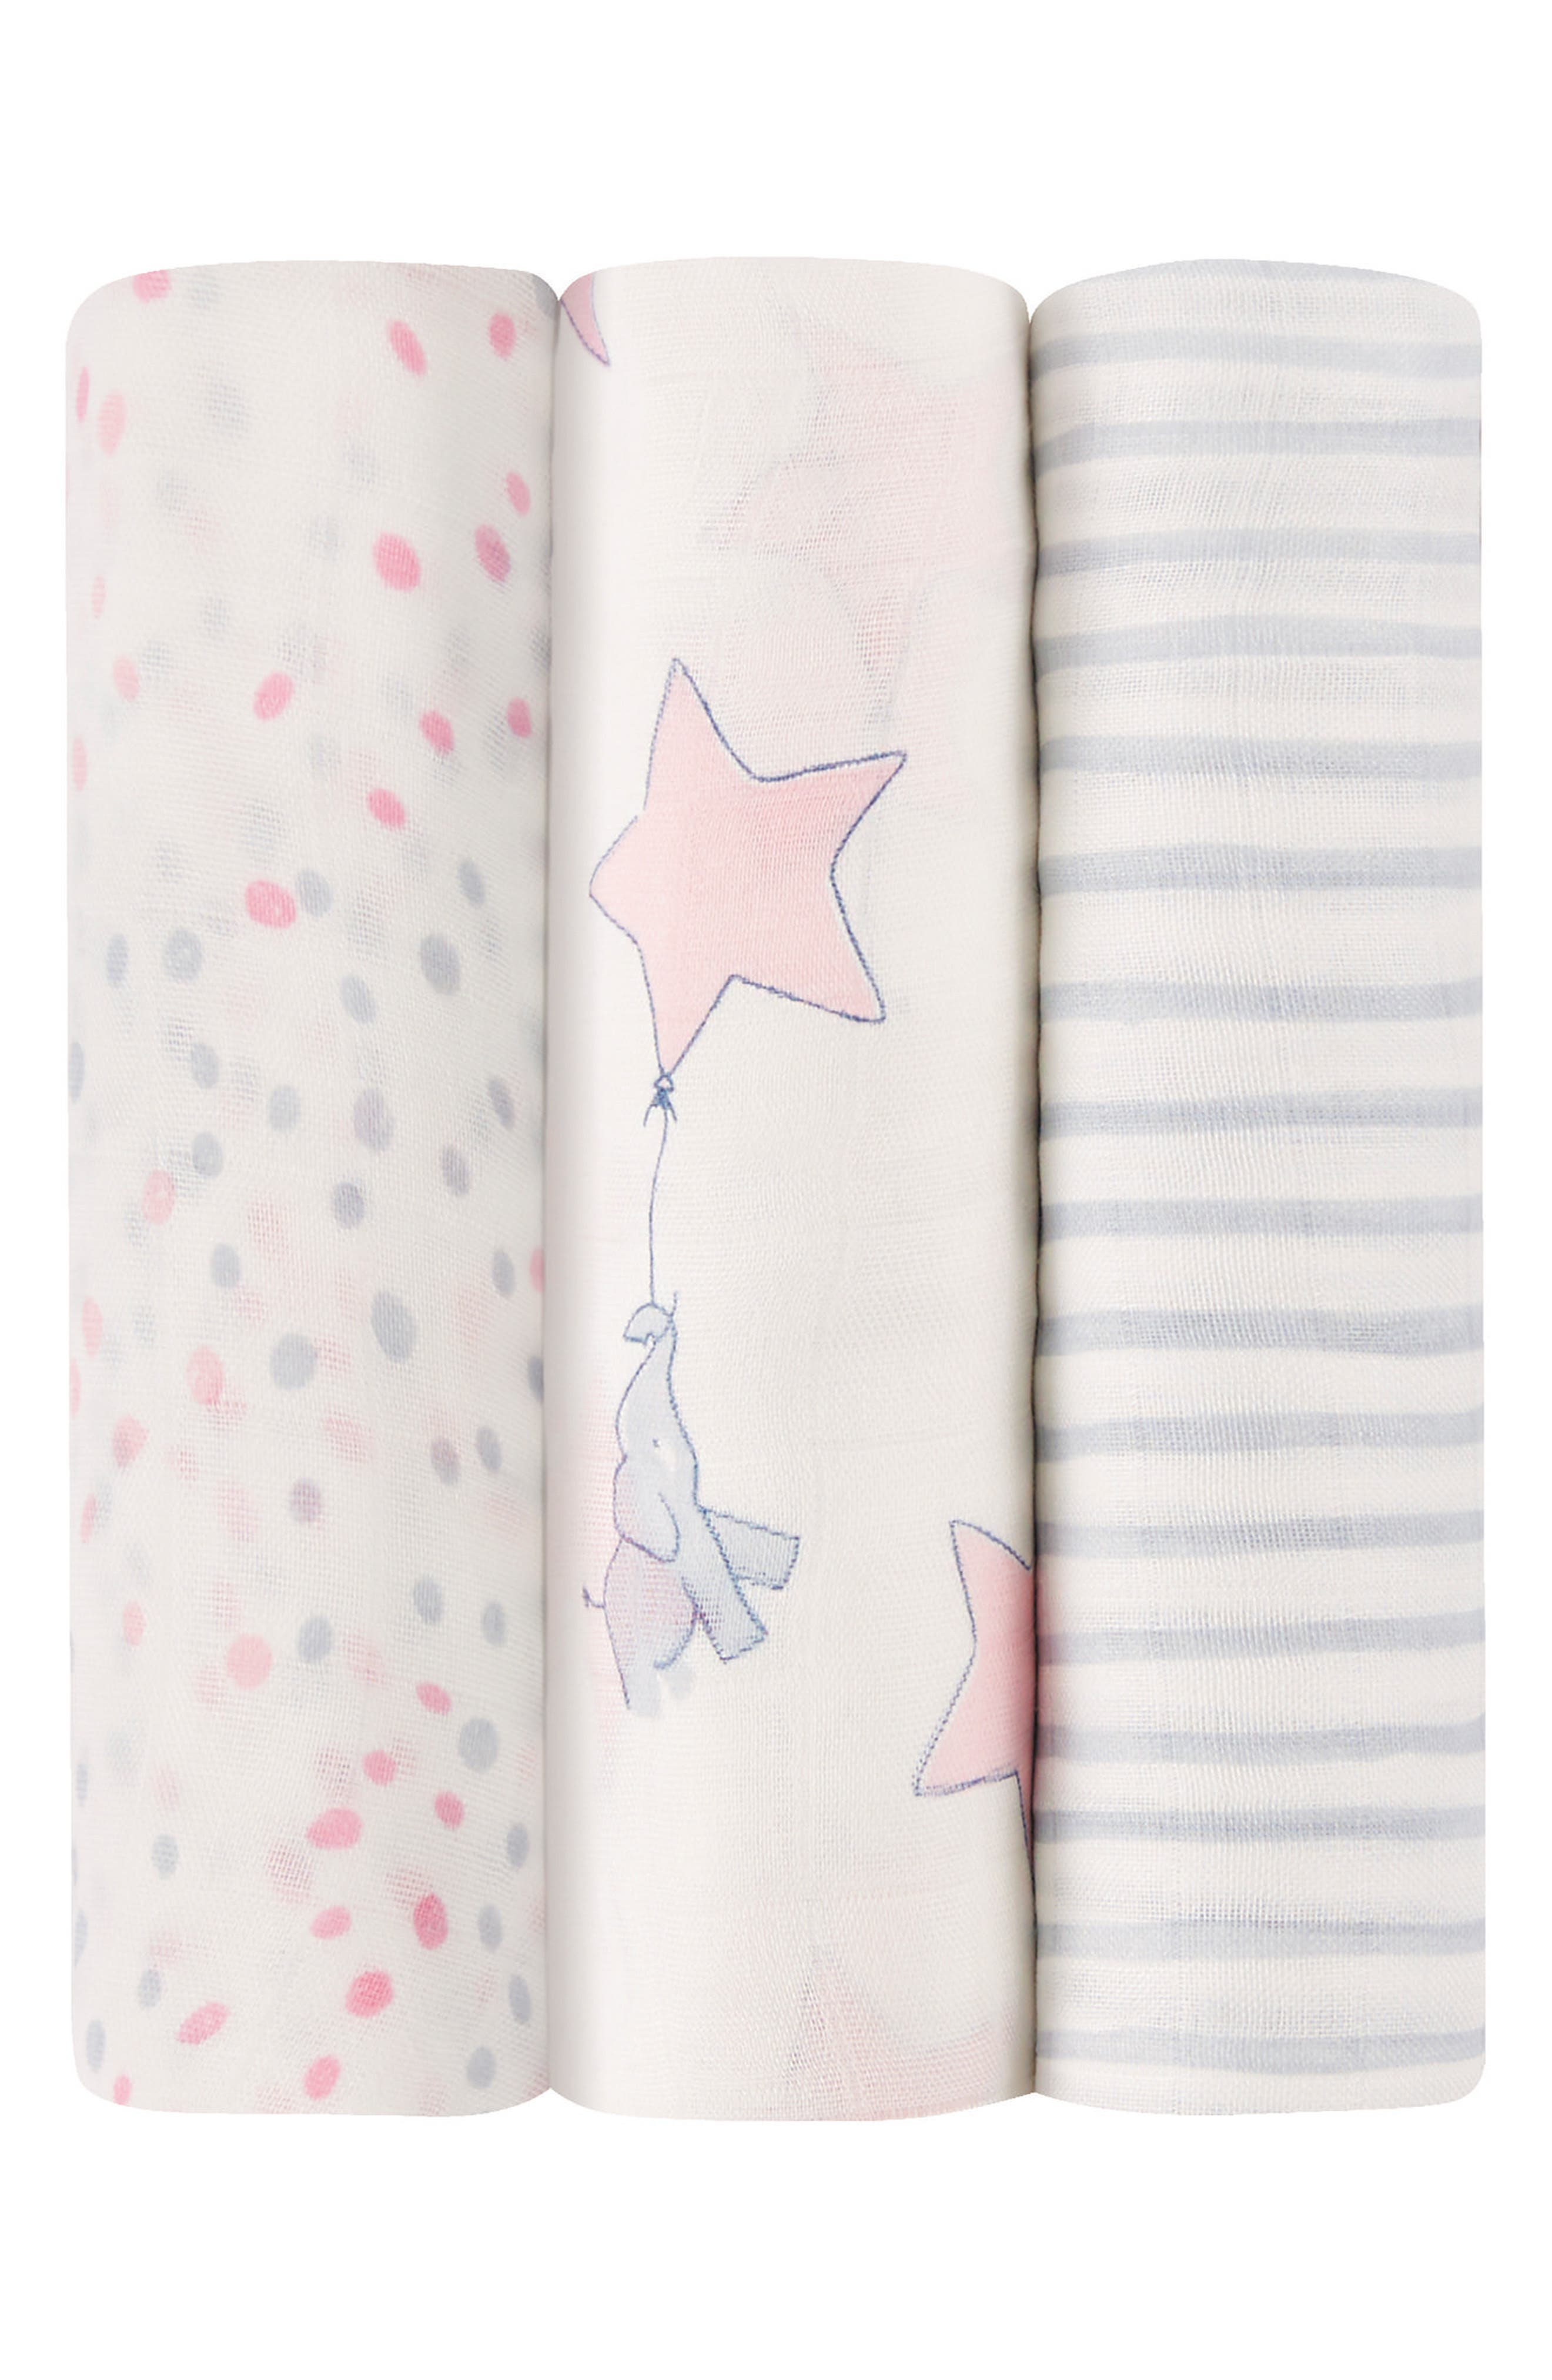 Silky Soft Pack of 3 Swaddling Cloths,                         Main,                         color, Elephant Star/ Blush